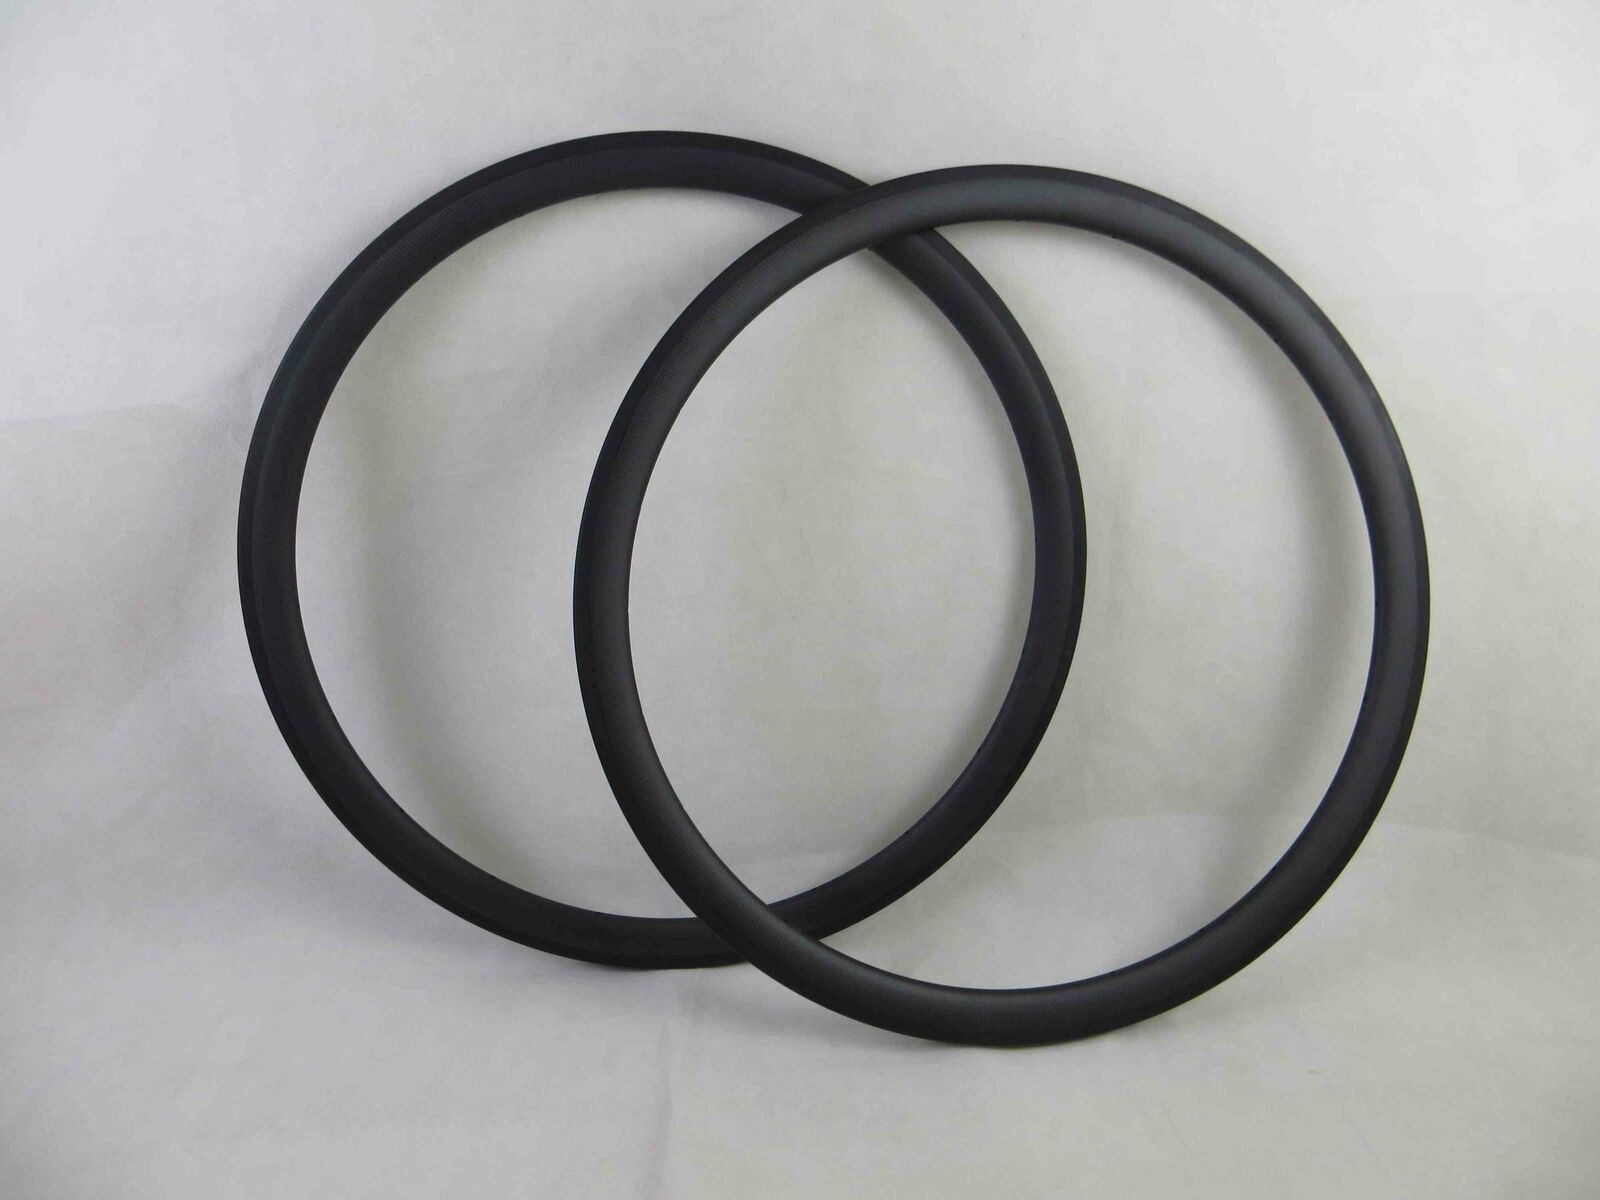 23mm Width  700C Carbon Road Bike Rims 38mm Tubular Carbon Fiber Bicycle Rims  check out the cheapest